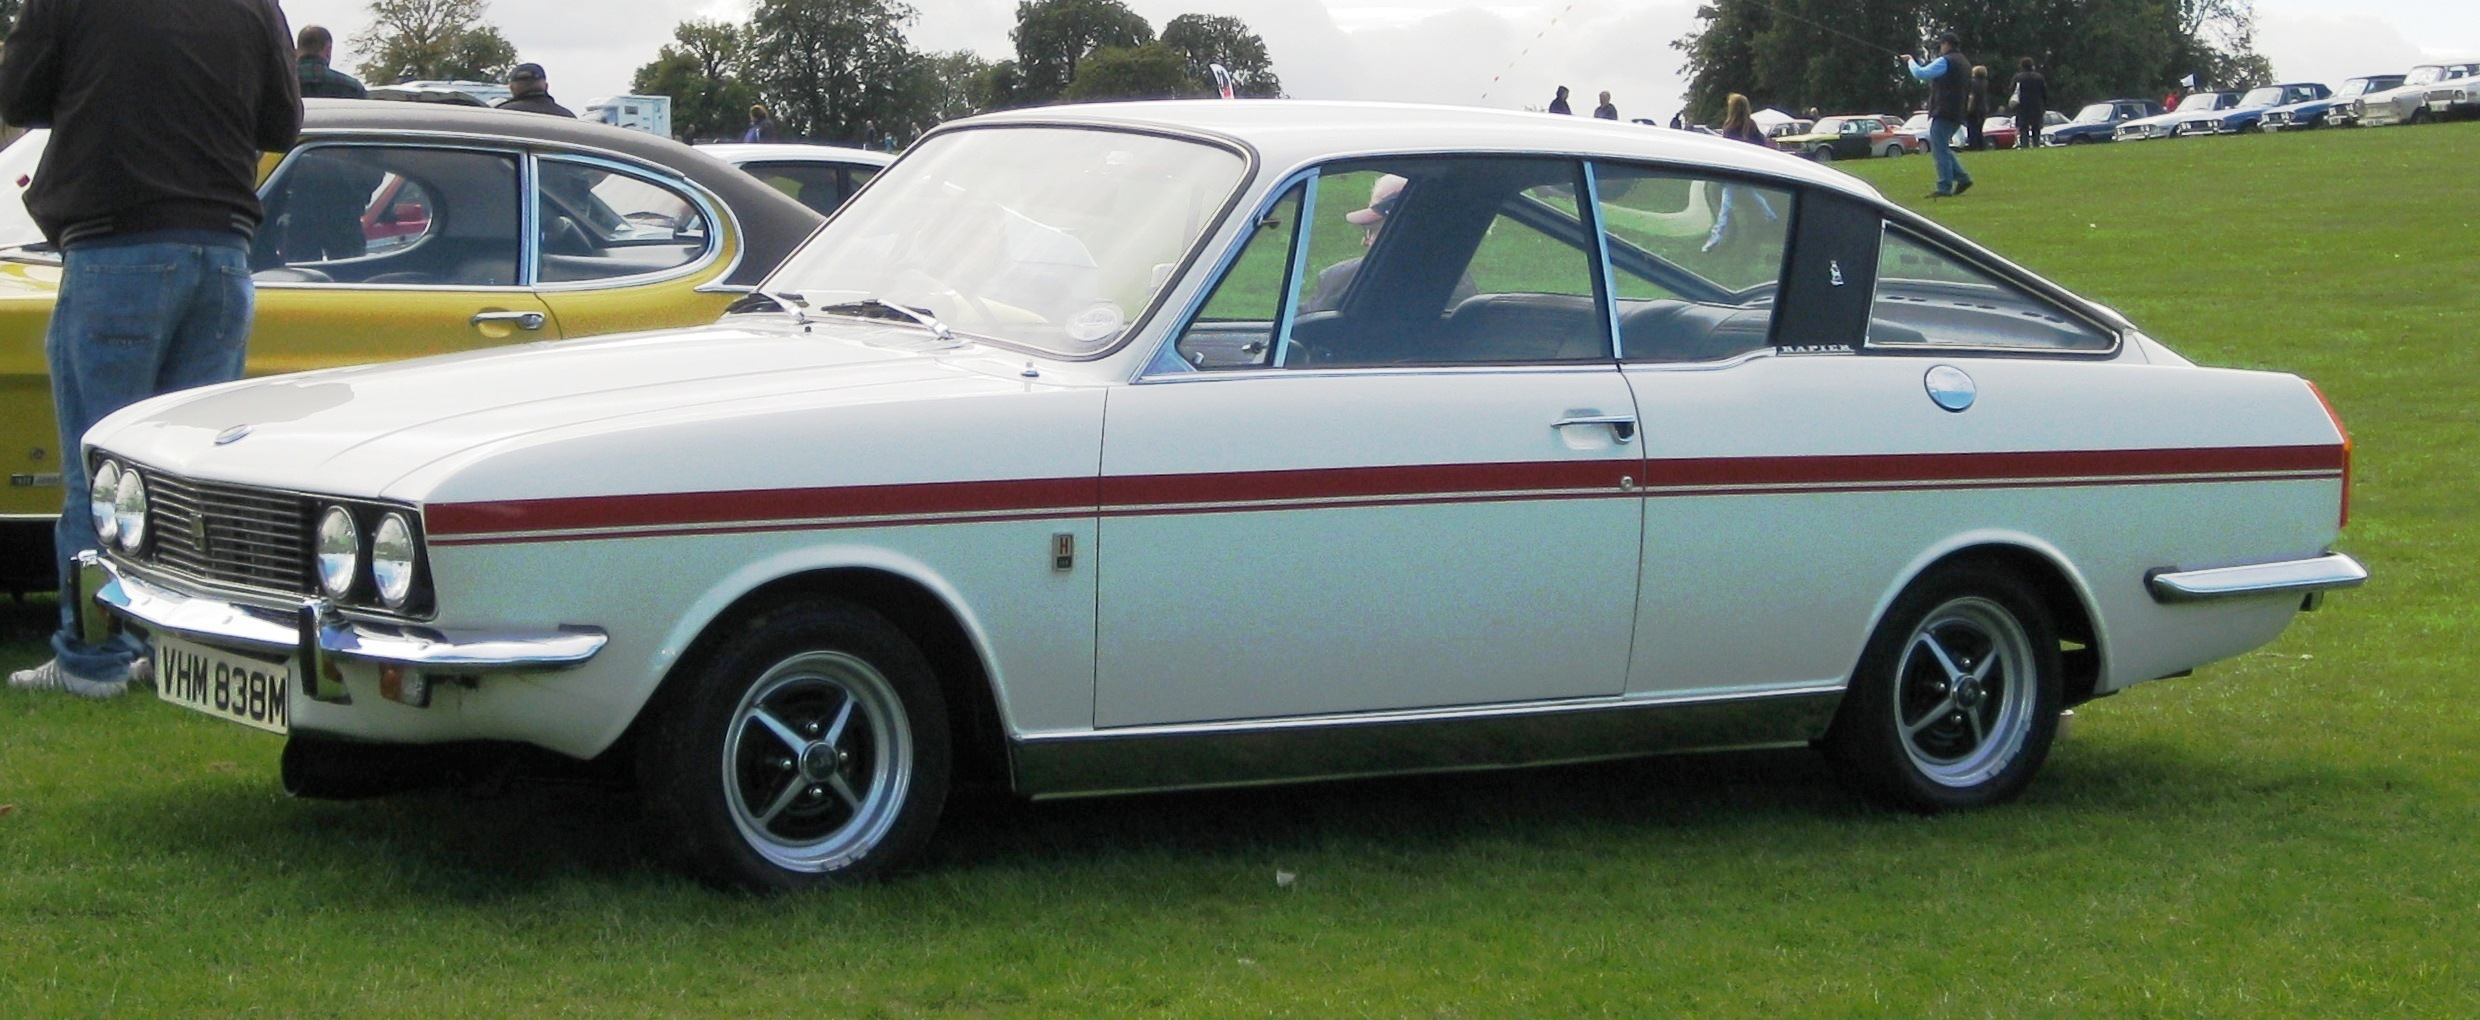 1968 Sunbeam Rapier #8